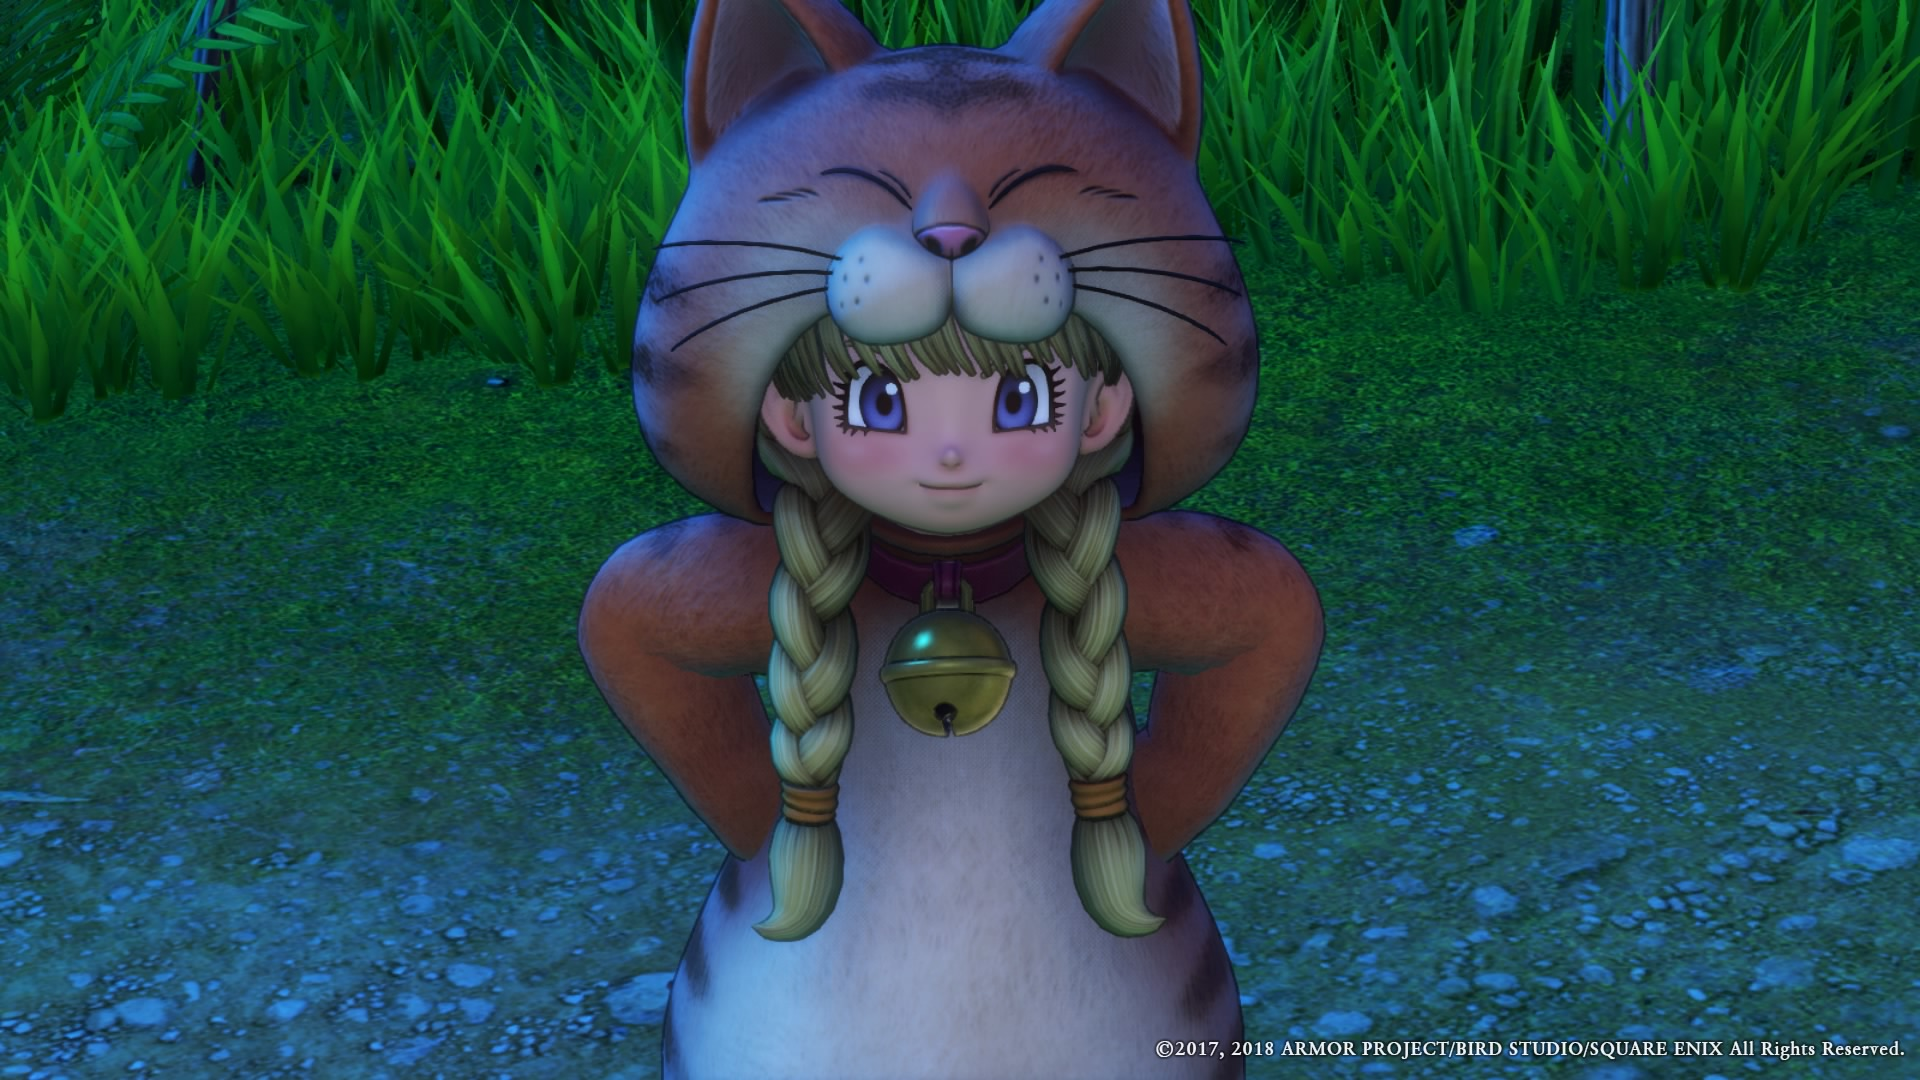 Dragon Quest 11 How To Find Every Special Costume Secret Customization Guide Gameranx Robe of serenity west of the warrior's rest you'll find ruins you're unable to access and poisonous areas. dragon quest 11 how to find every